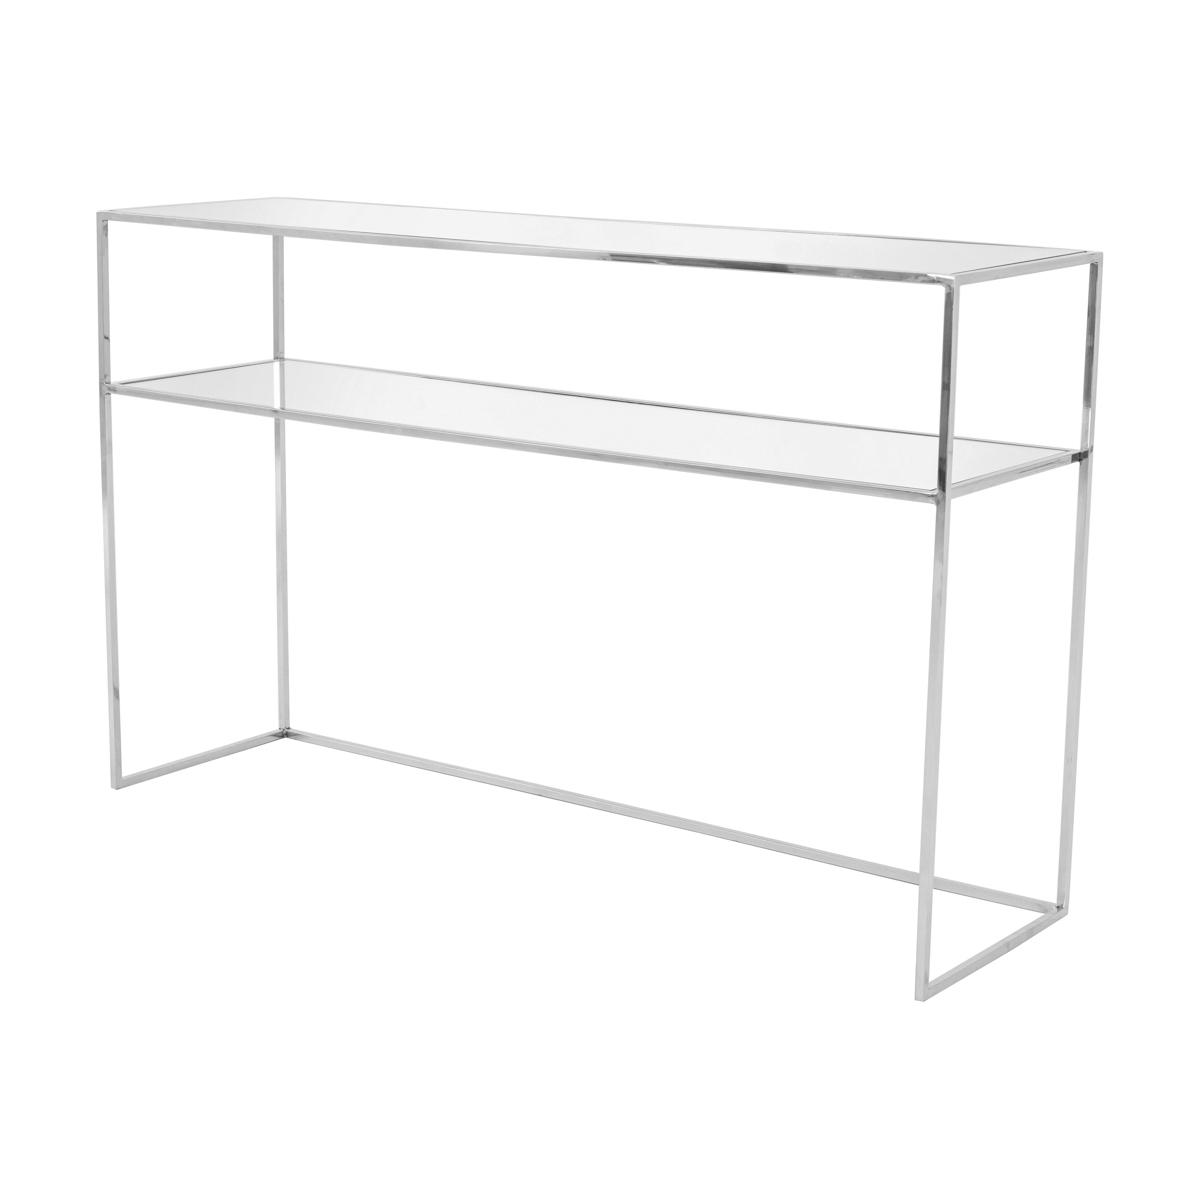 Gazelle Console Table 110 cm – Krom